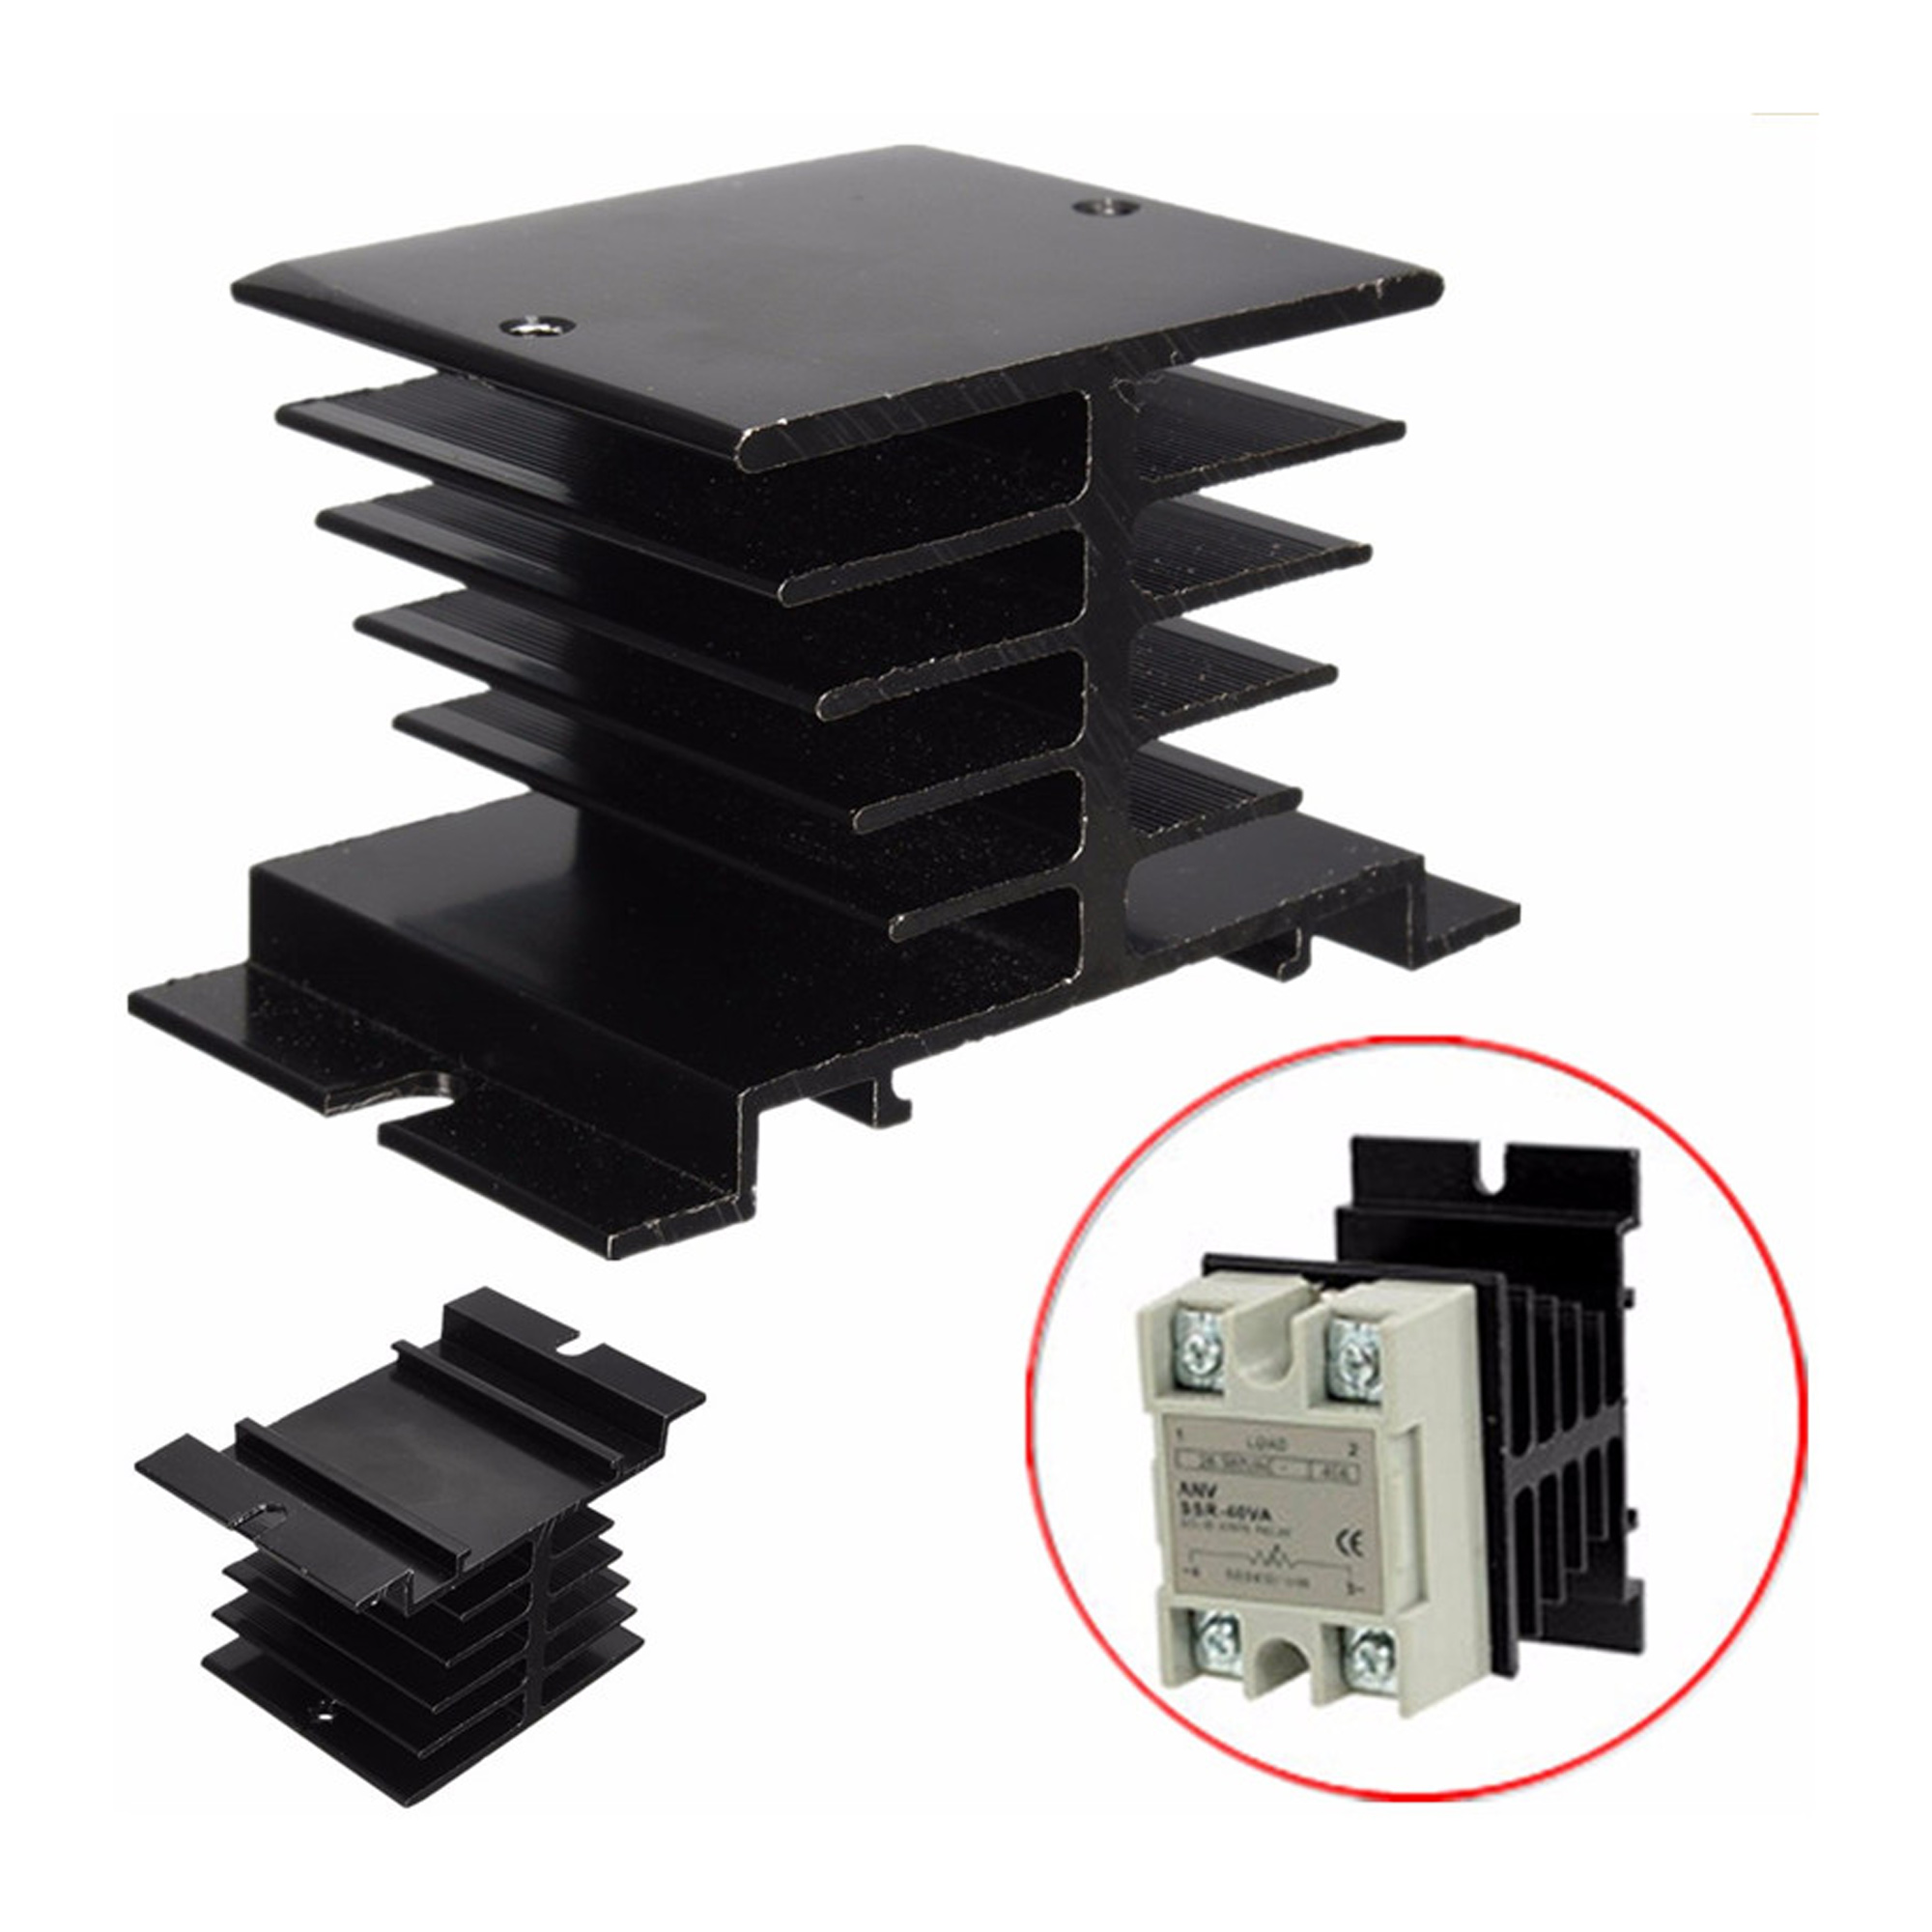 Aluminum Heat Sink Solid State Relay SSR Small Size Heat Dissipation 10A-40A BBC